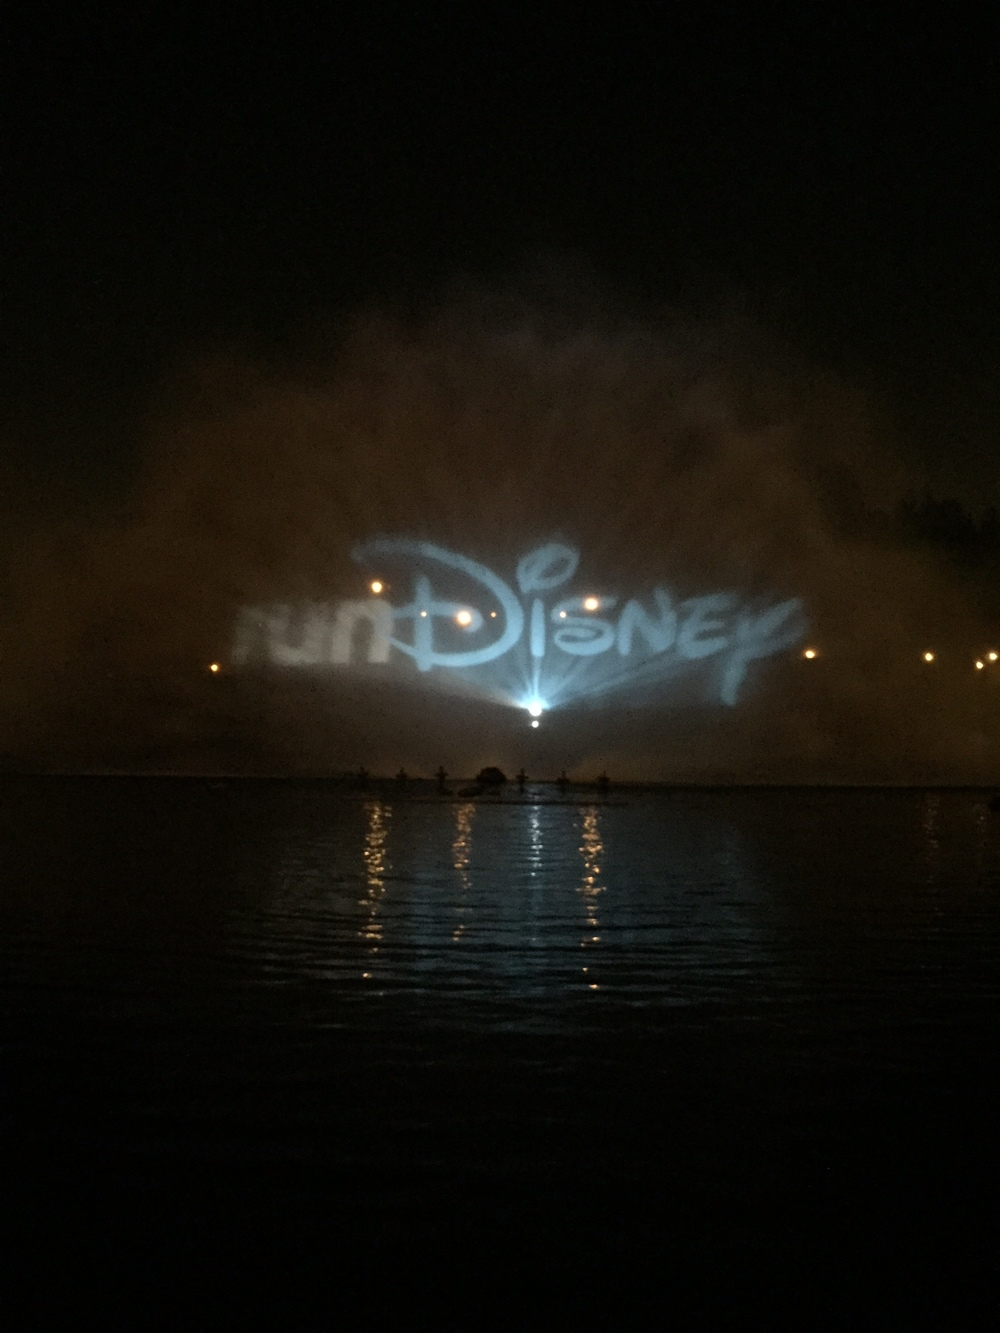 rundisney-disneyland-10-anniversary-party.jpg